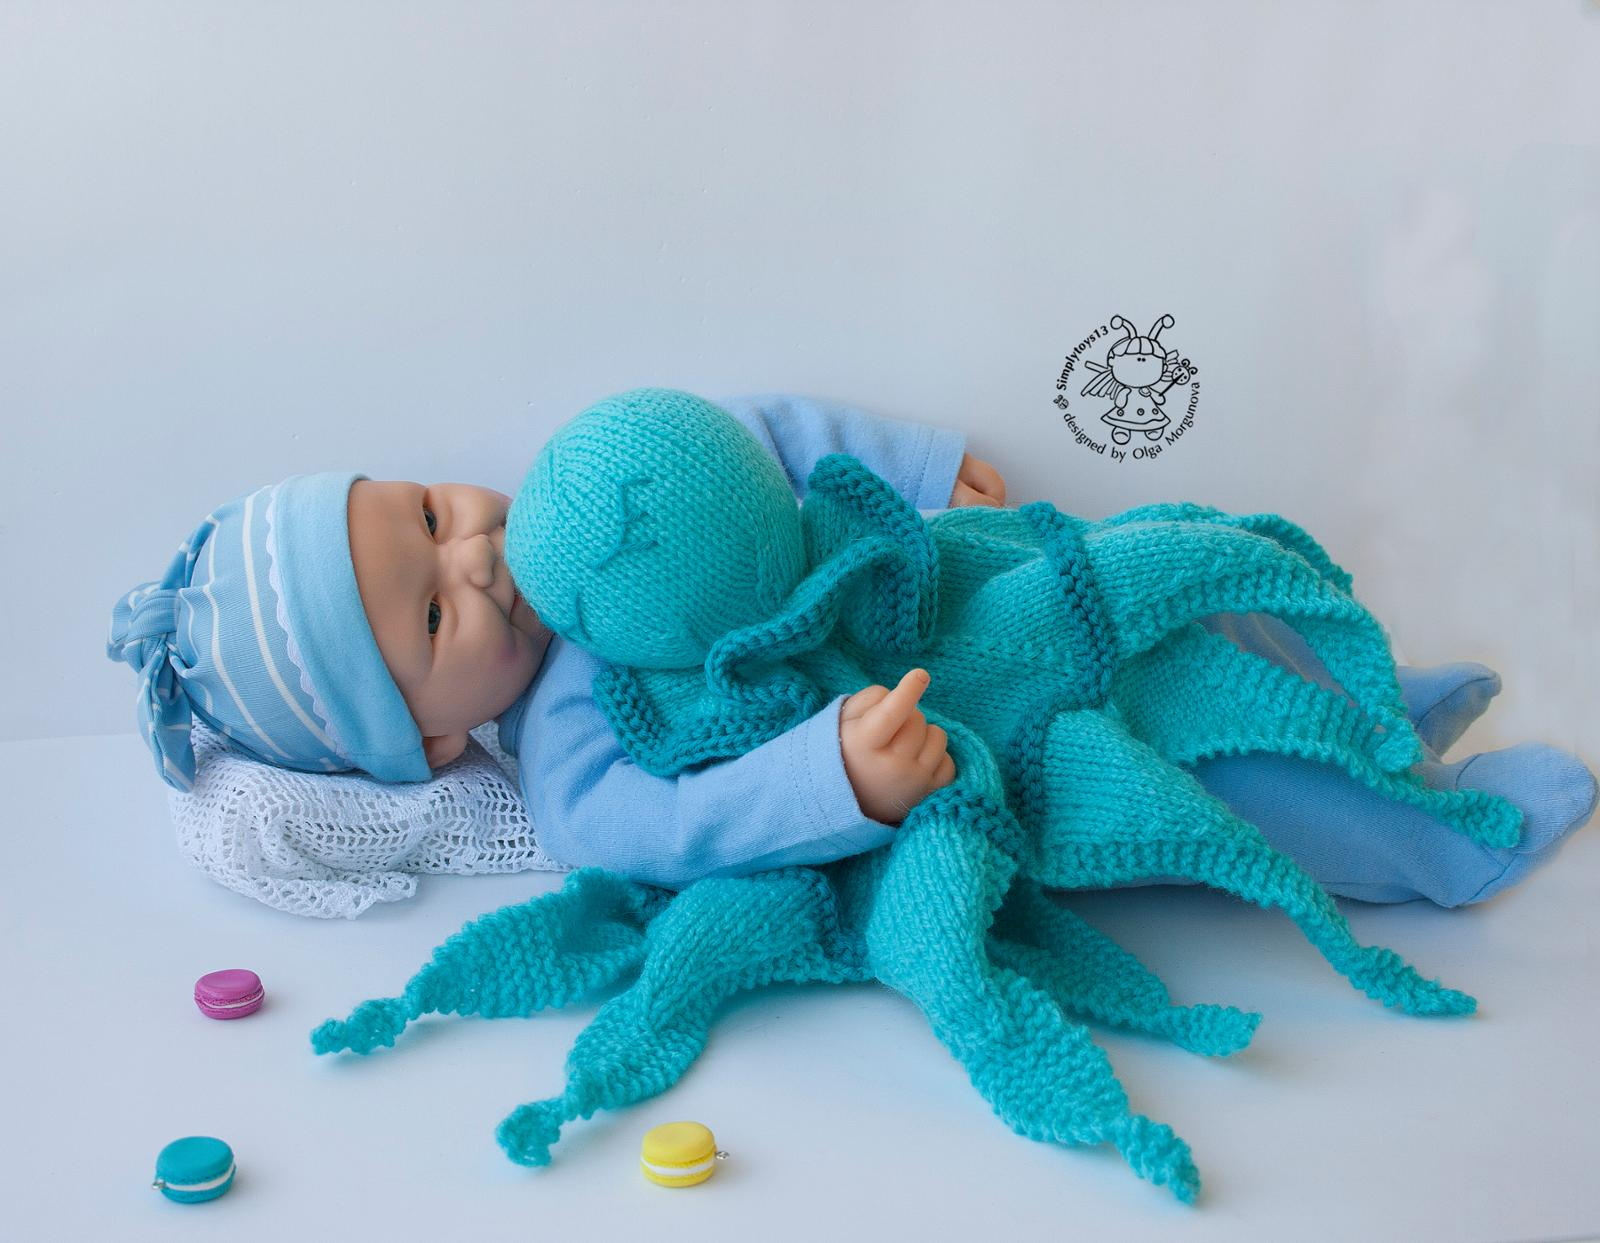 Knitting Patterns For Toys Uk The Knit Octopus For Babies The Latest And Greatest Way To Give Back